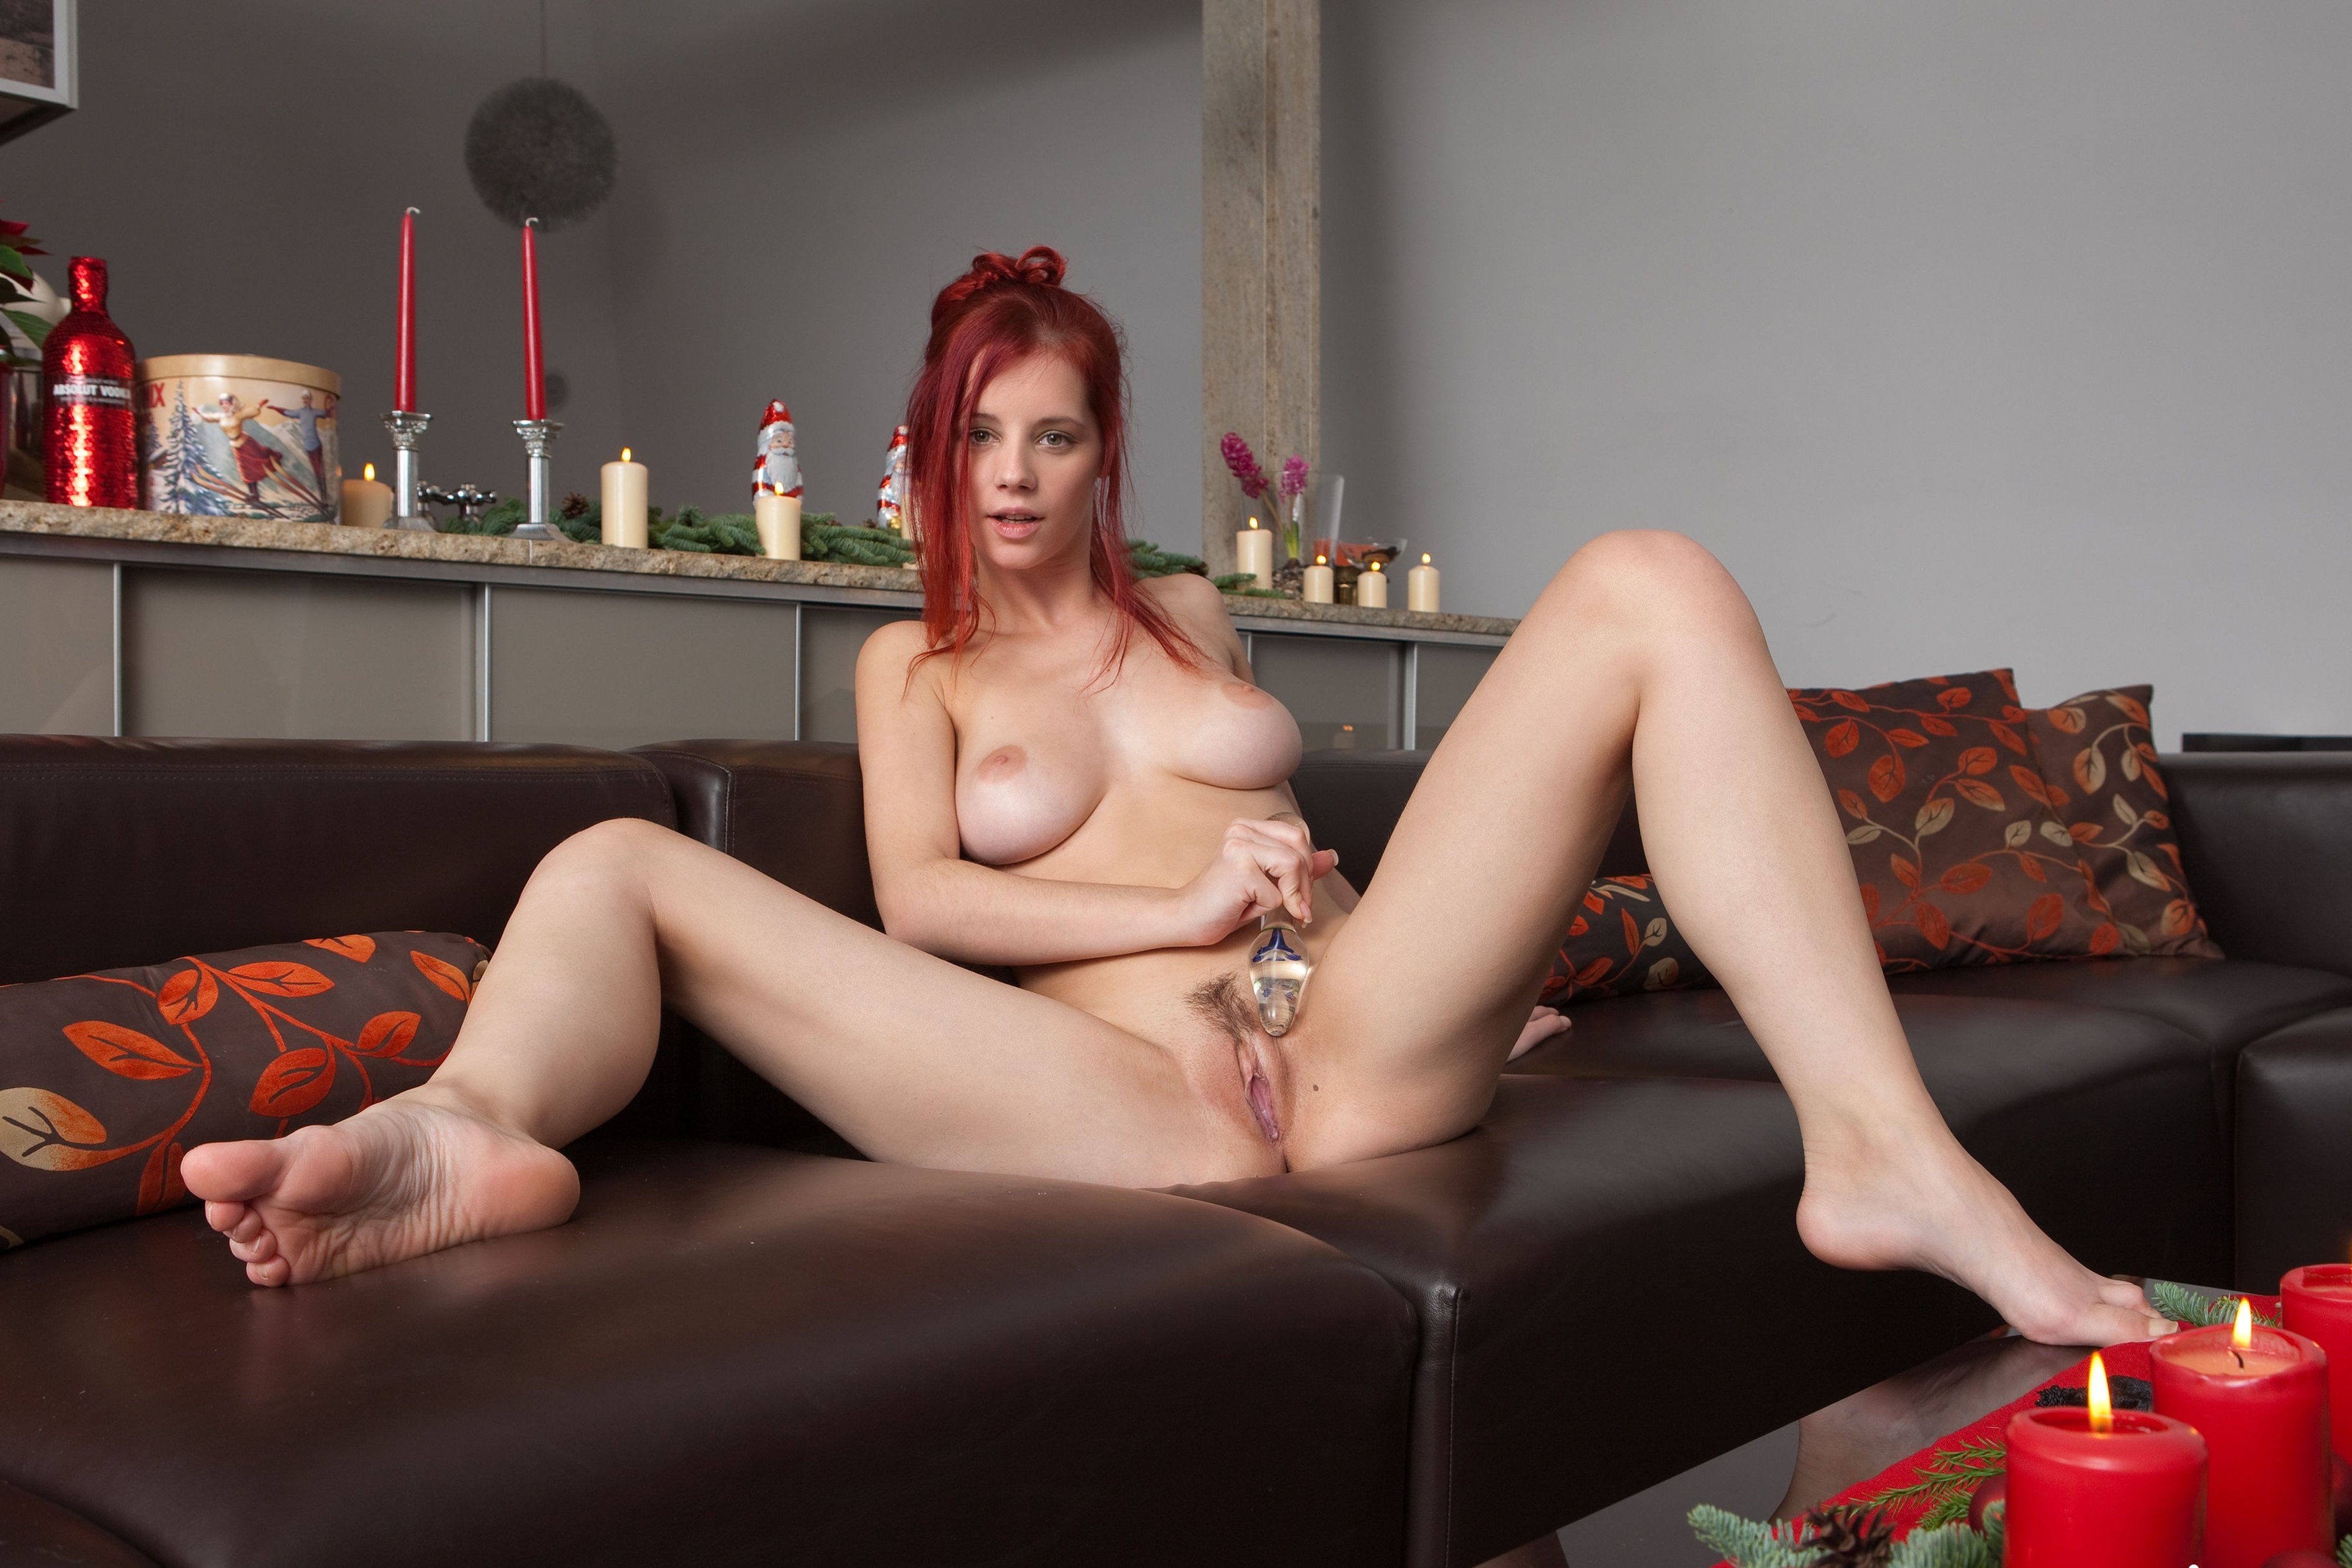 sex-cake-picture-with-nude-girl-nancy-gribel-naked